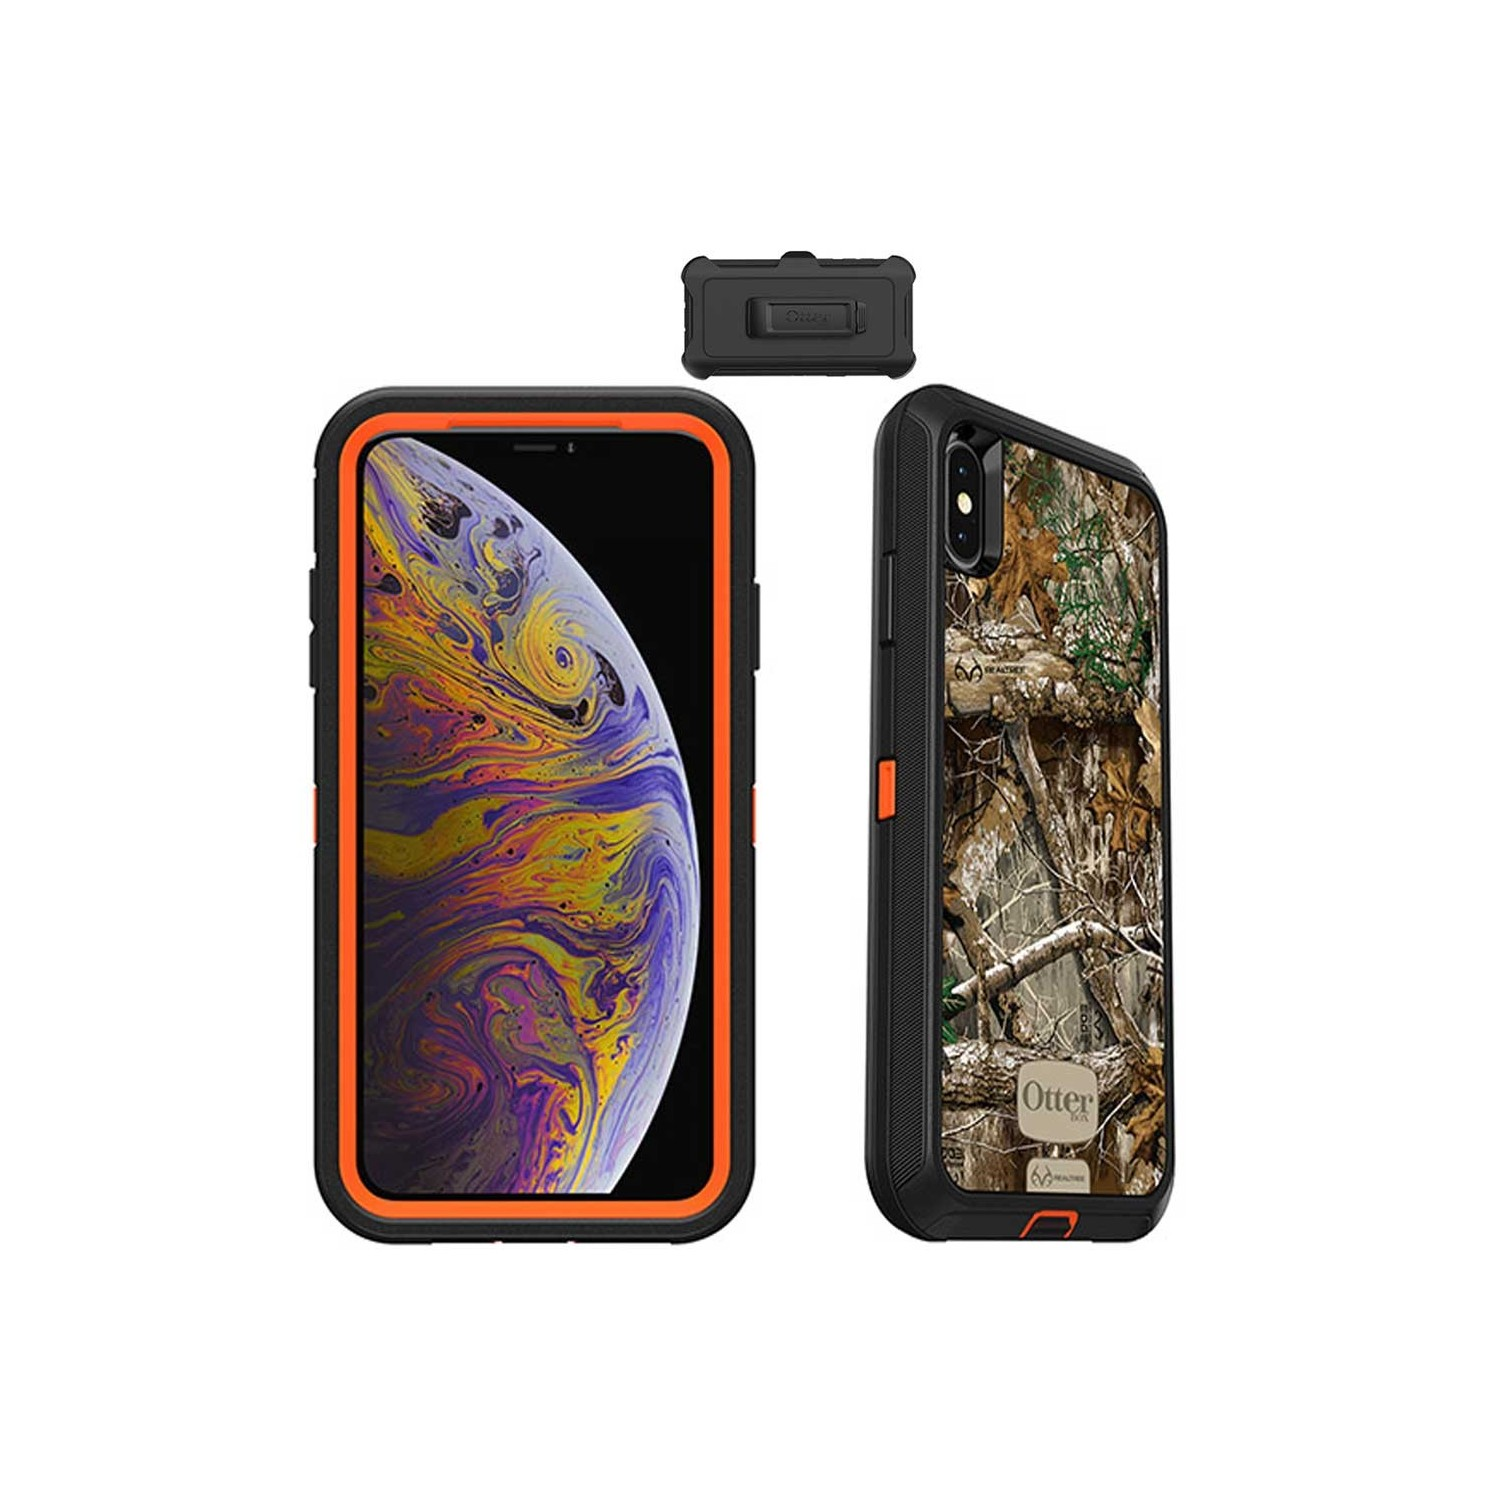 Case - Otterbox Defender for iPhone Xs MAX Camo Realtree Edge